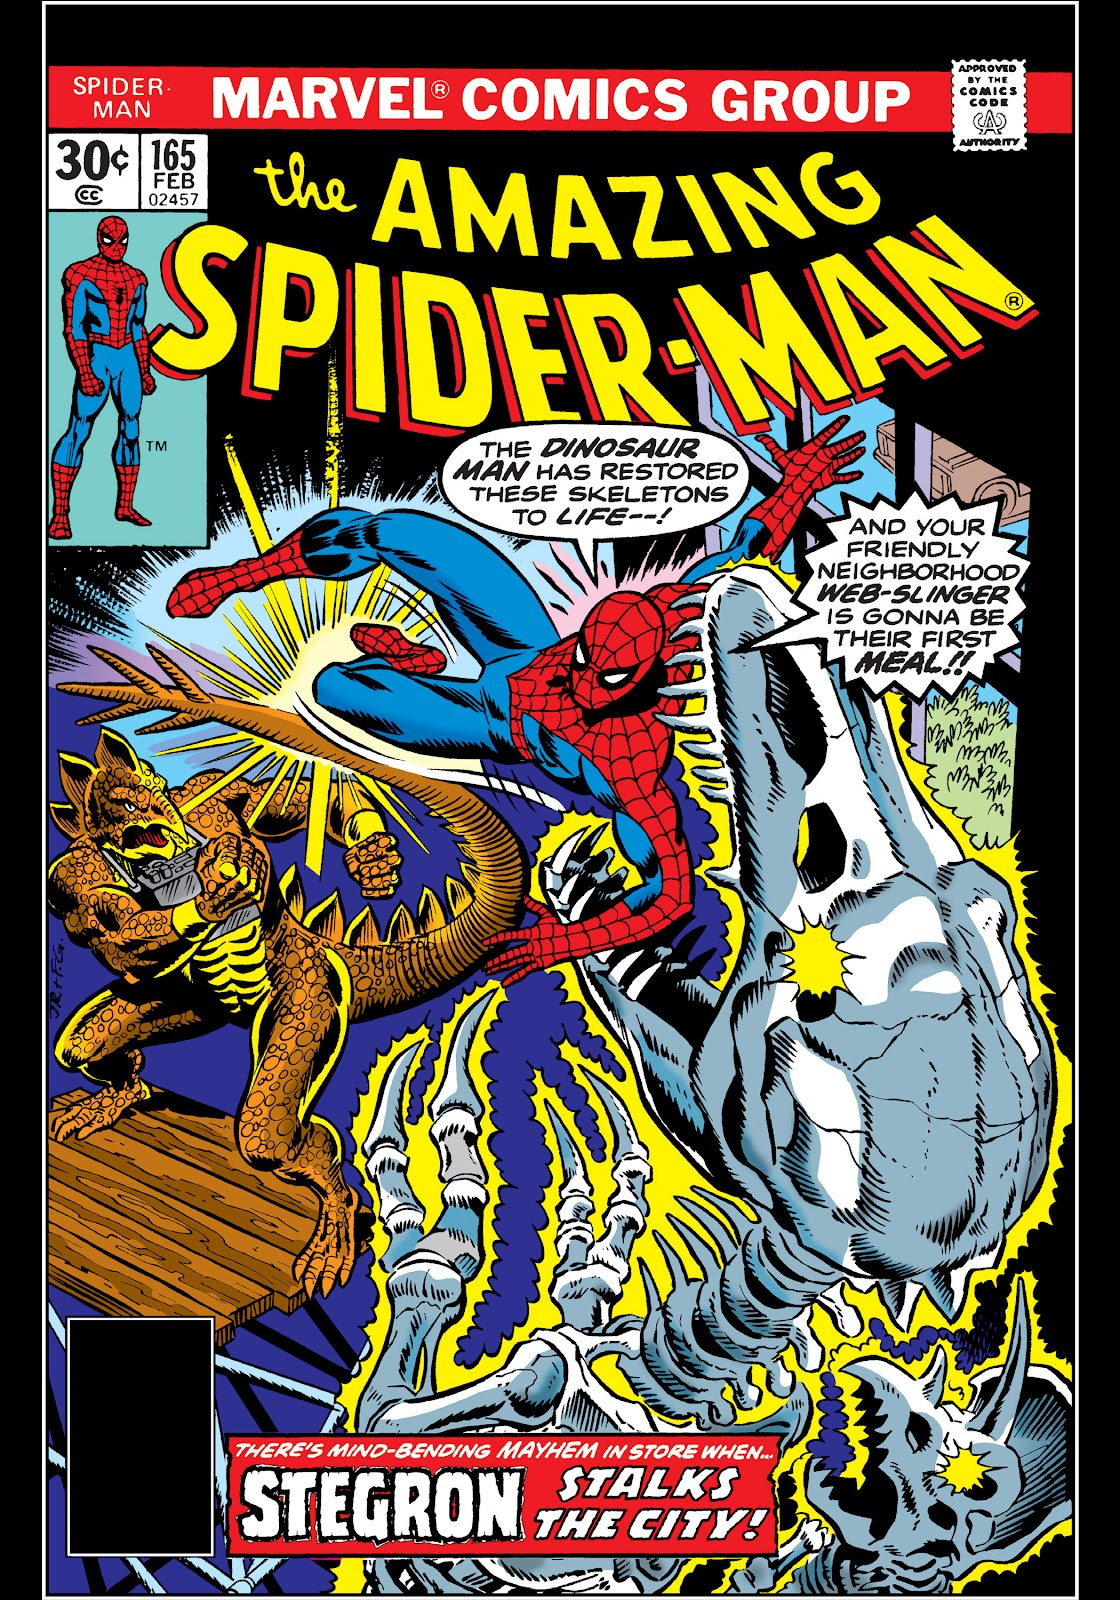 the amazing spider man 1963 issue 165 read full comics online